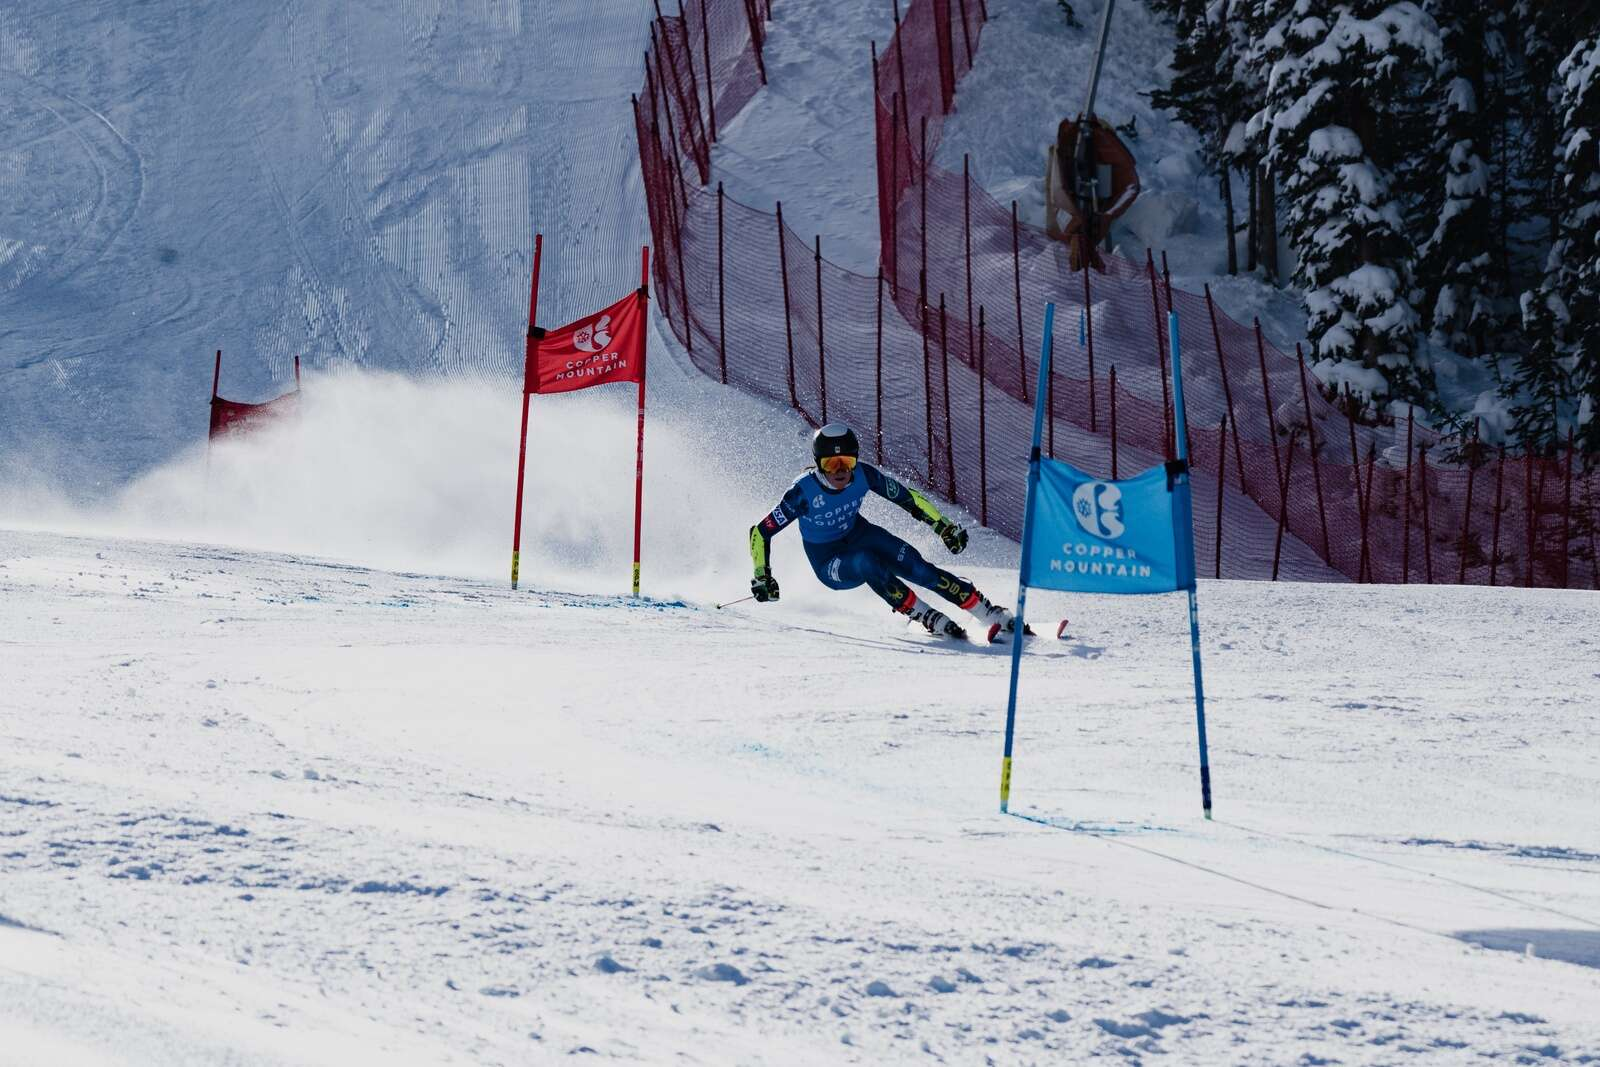 A skier competes at the U.S. Alpine Championships at Copper Mountain Resort earlier this week, a replacement event for a spring national championships that was canceled due to the novel coronavirus. | Photo by Max Hall / U.S. Ski & Snowboard